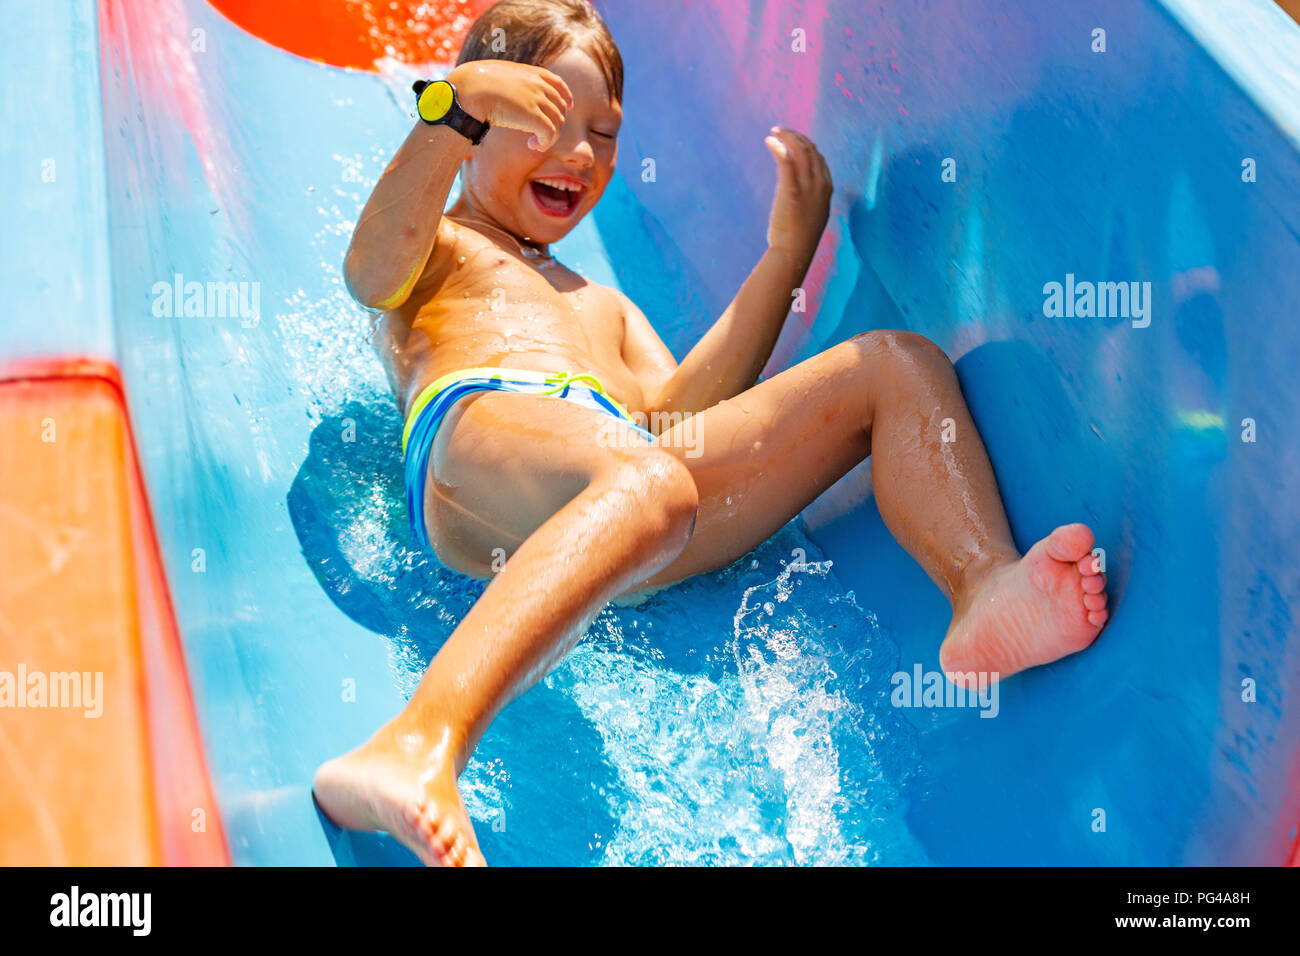 A happy boy on water slide in a swimming pool having fun during summer vacation in a beautiful aqua park. A boy slithering down the water slide and making splashes. Stock Photo